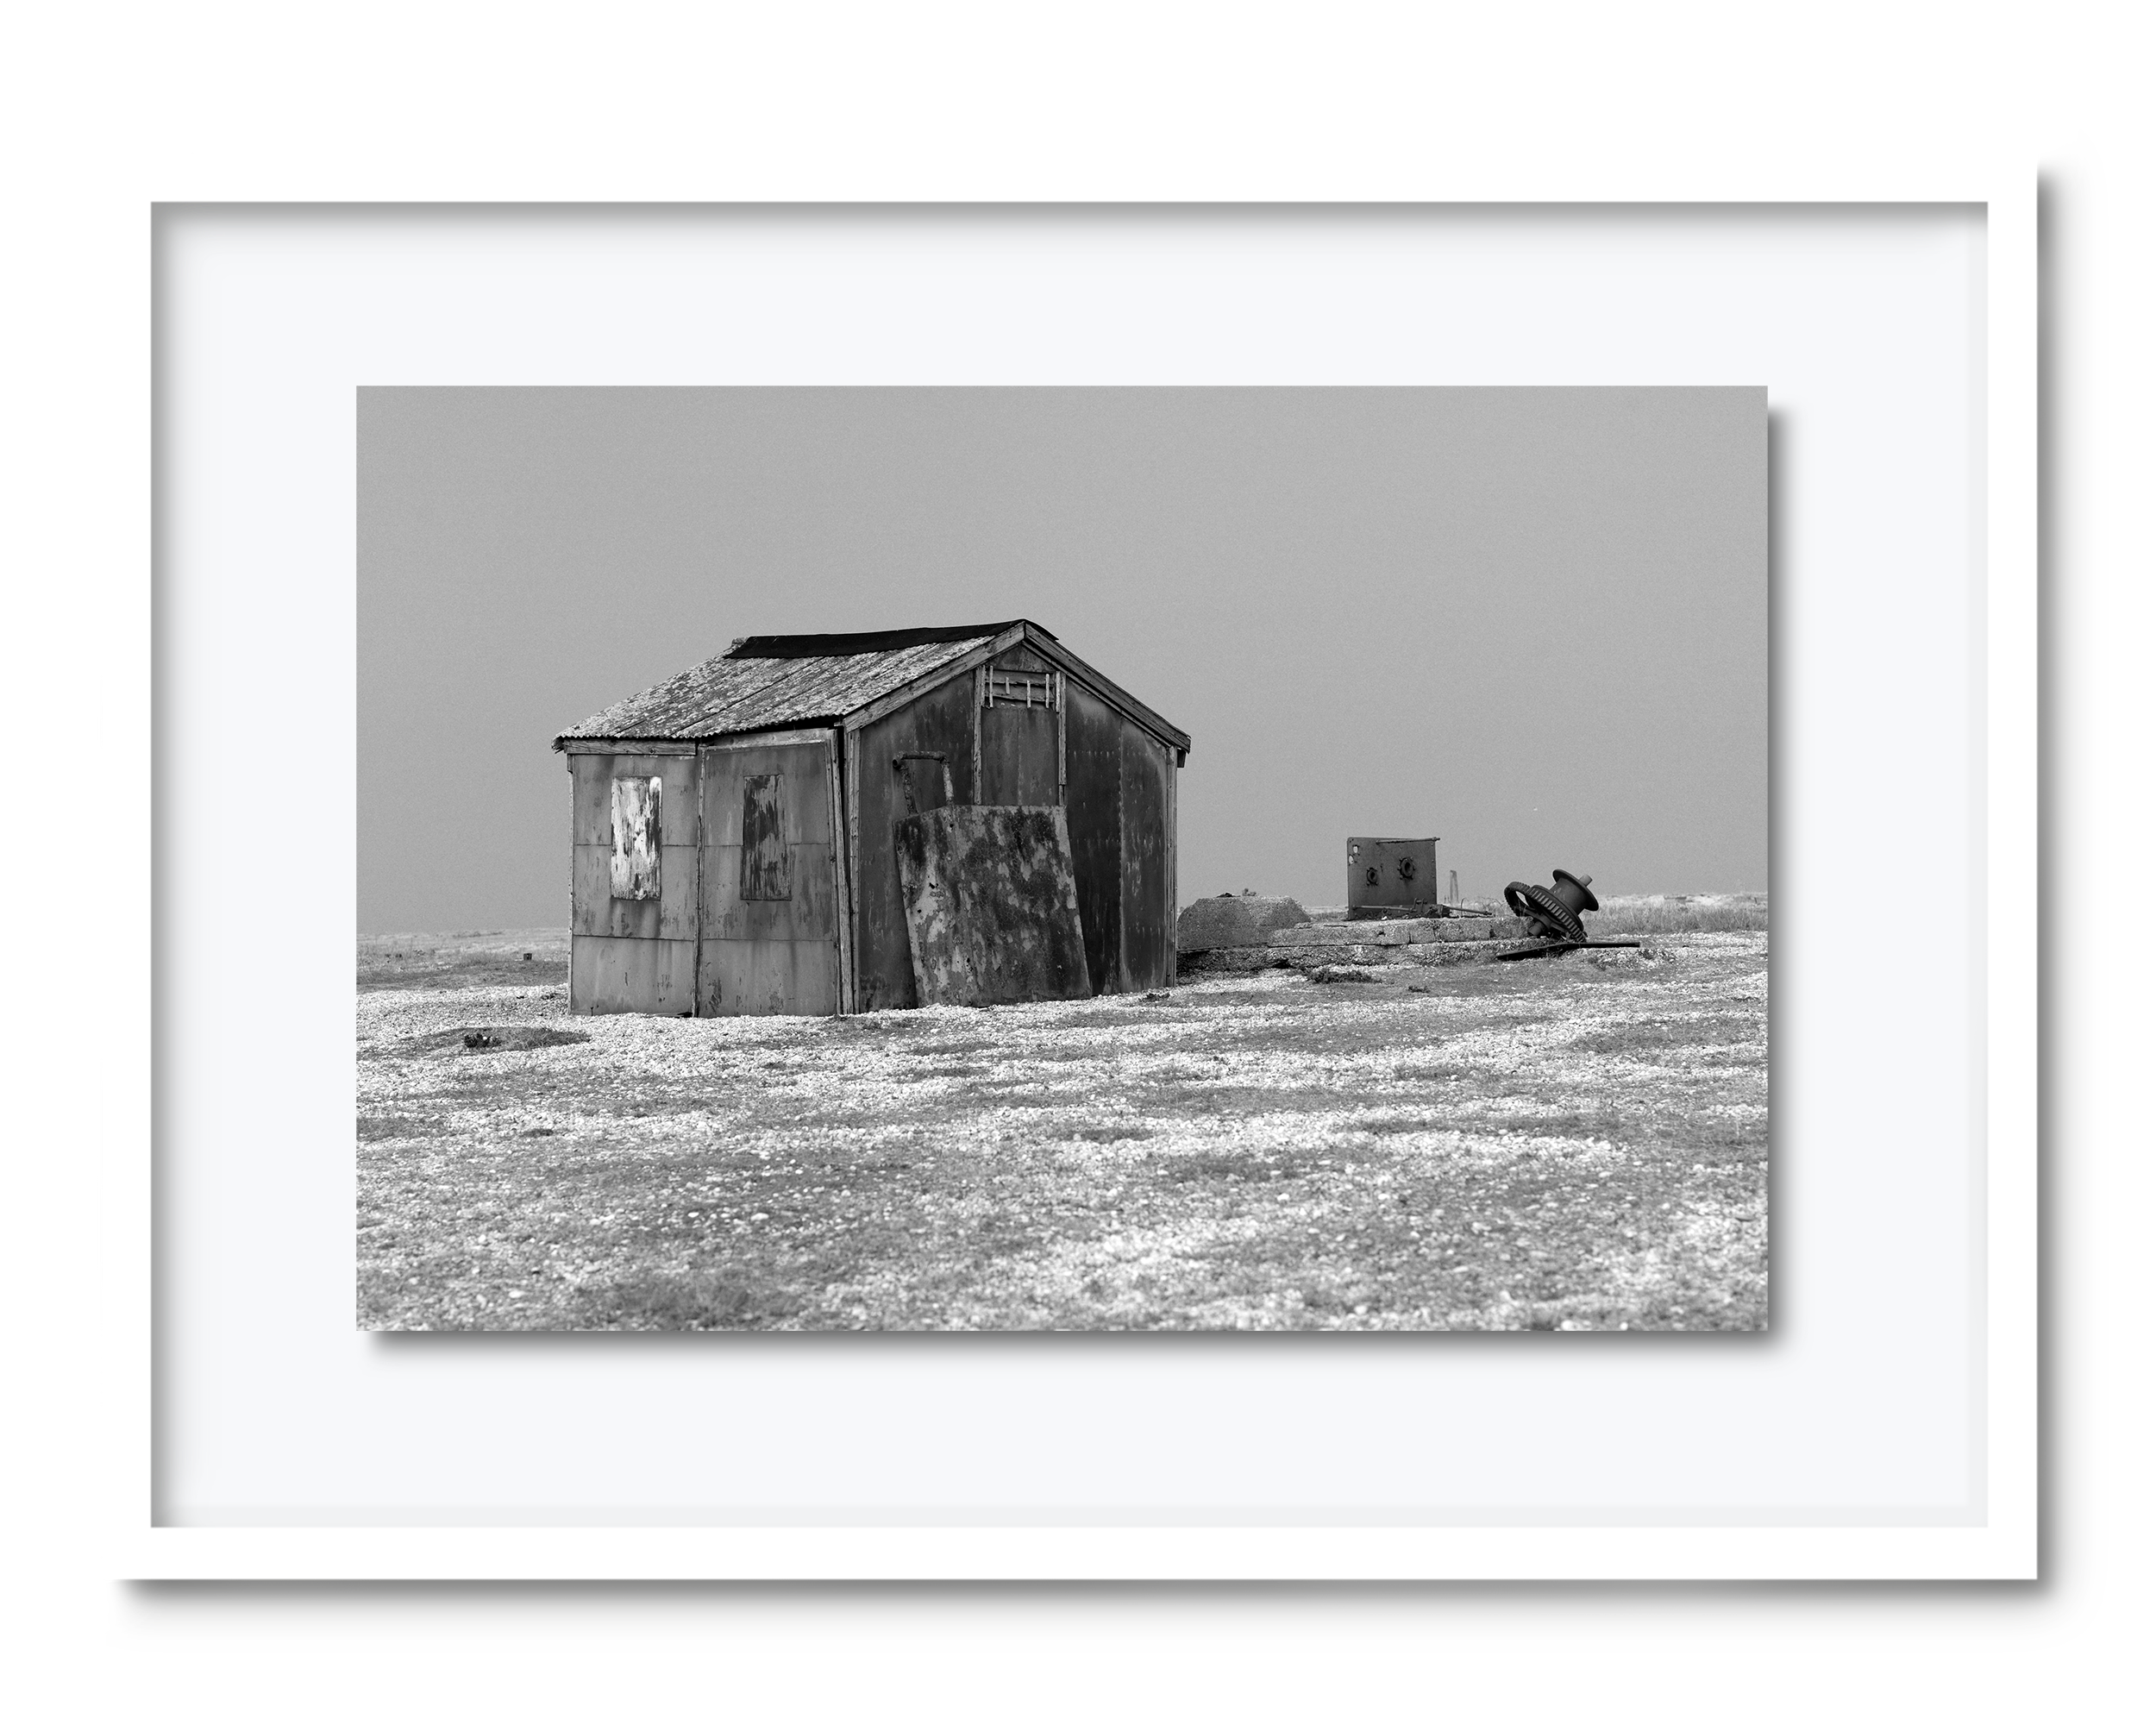 32.david-pearce-dungeness3.png